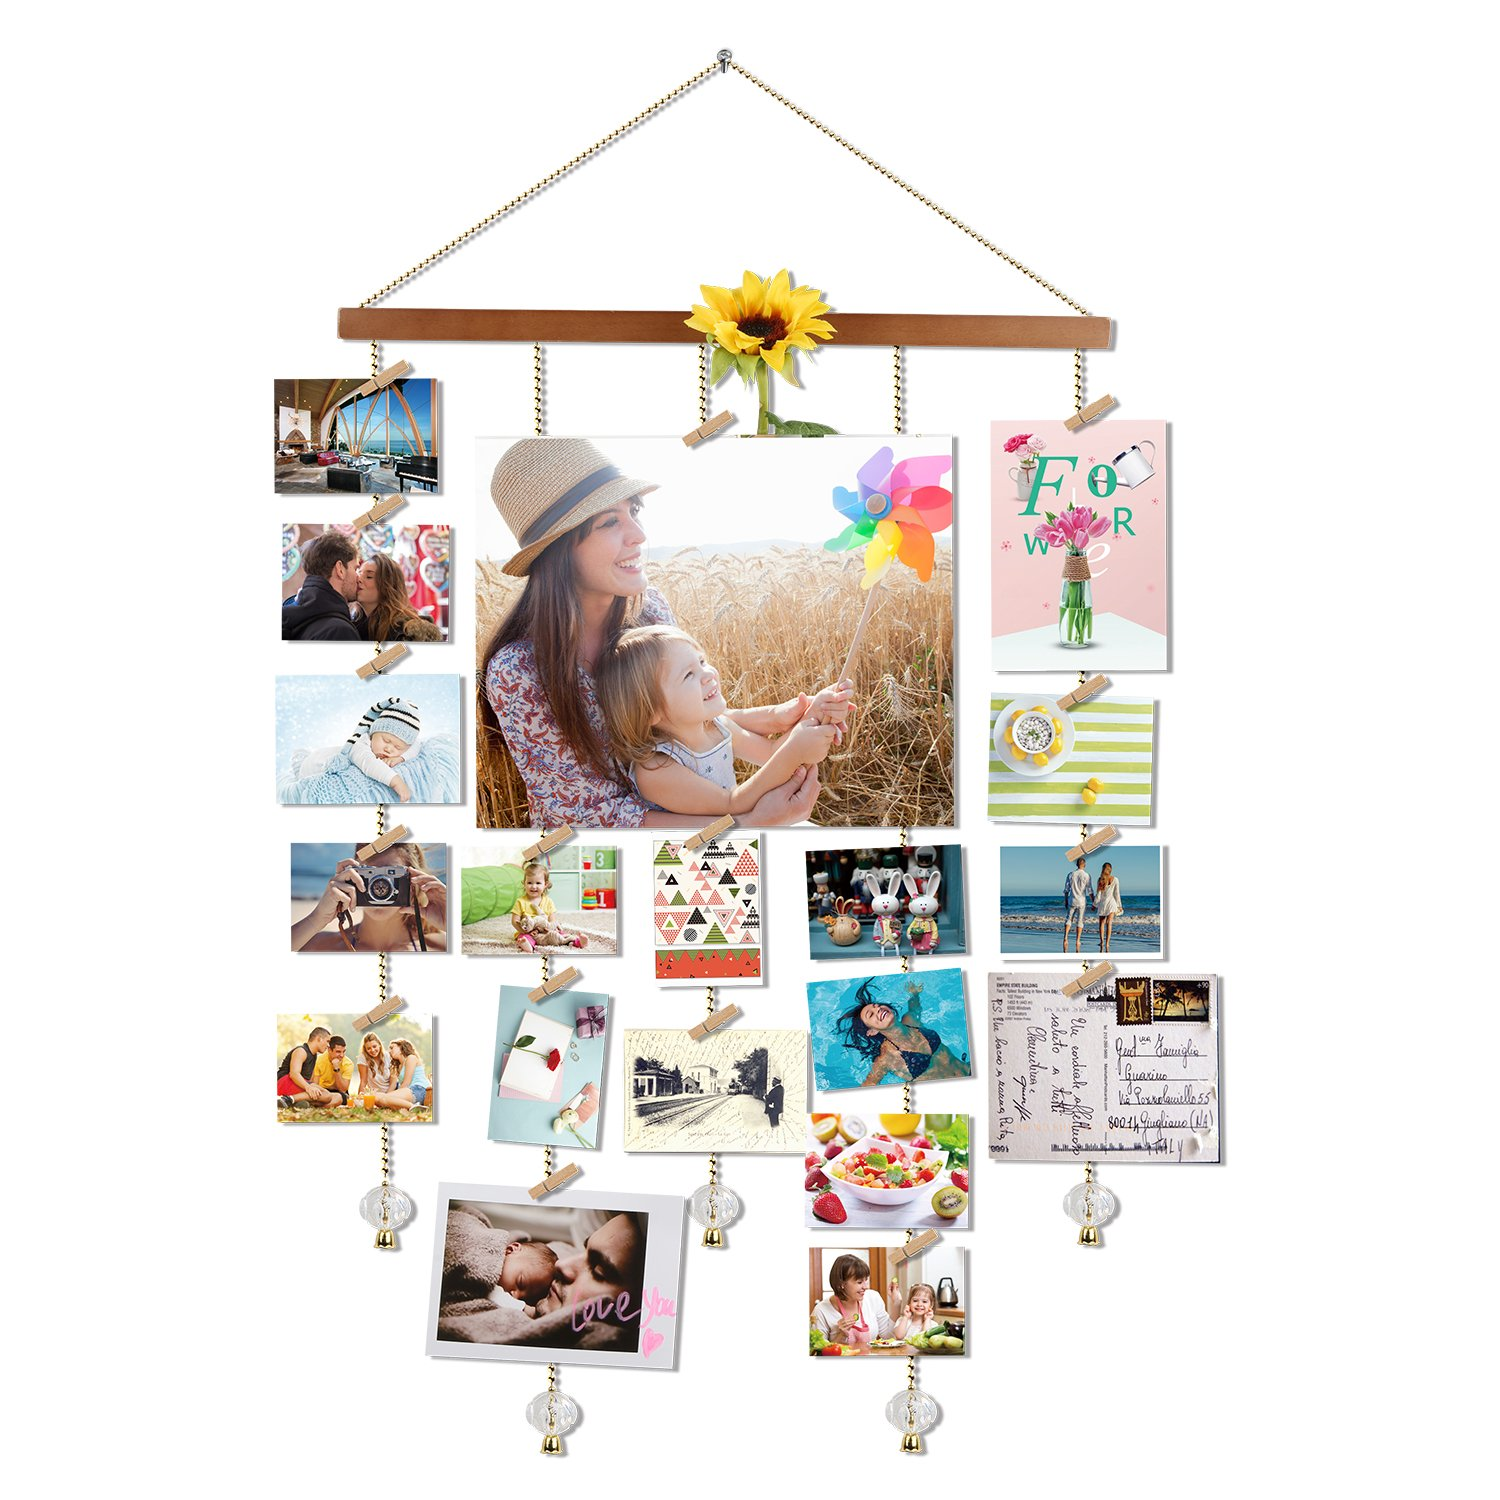 Olakee Photo Display Picture Frame Collage by Multi Photo Display with 20 Clips, Aged Walnut Wood Golden Chain with Crystal Pendant 16×29 inch (Brown) by Olakee